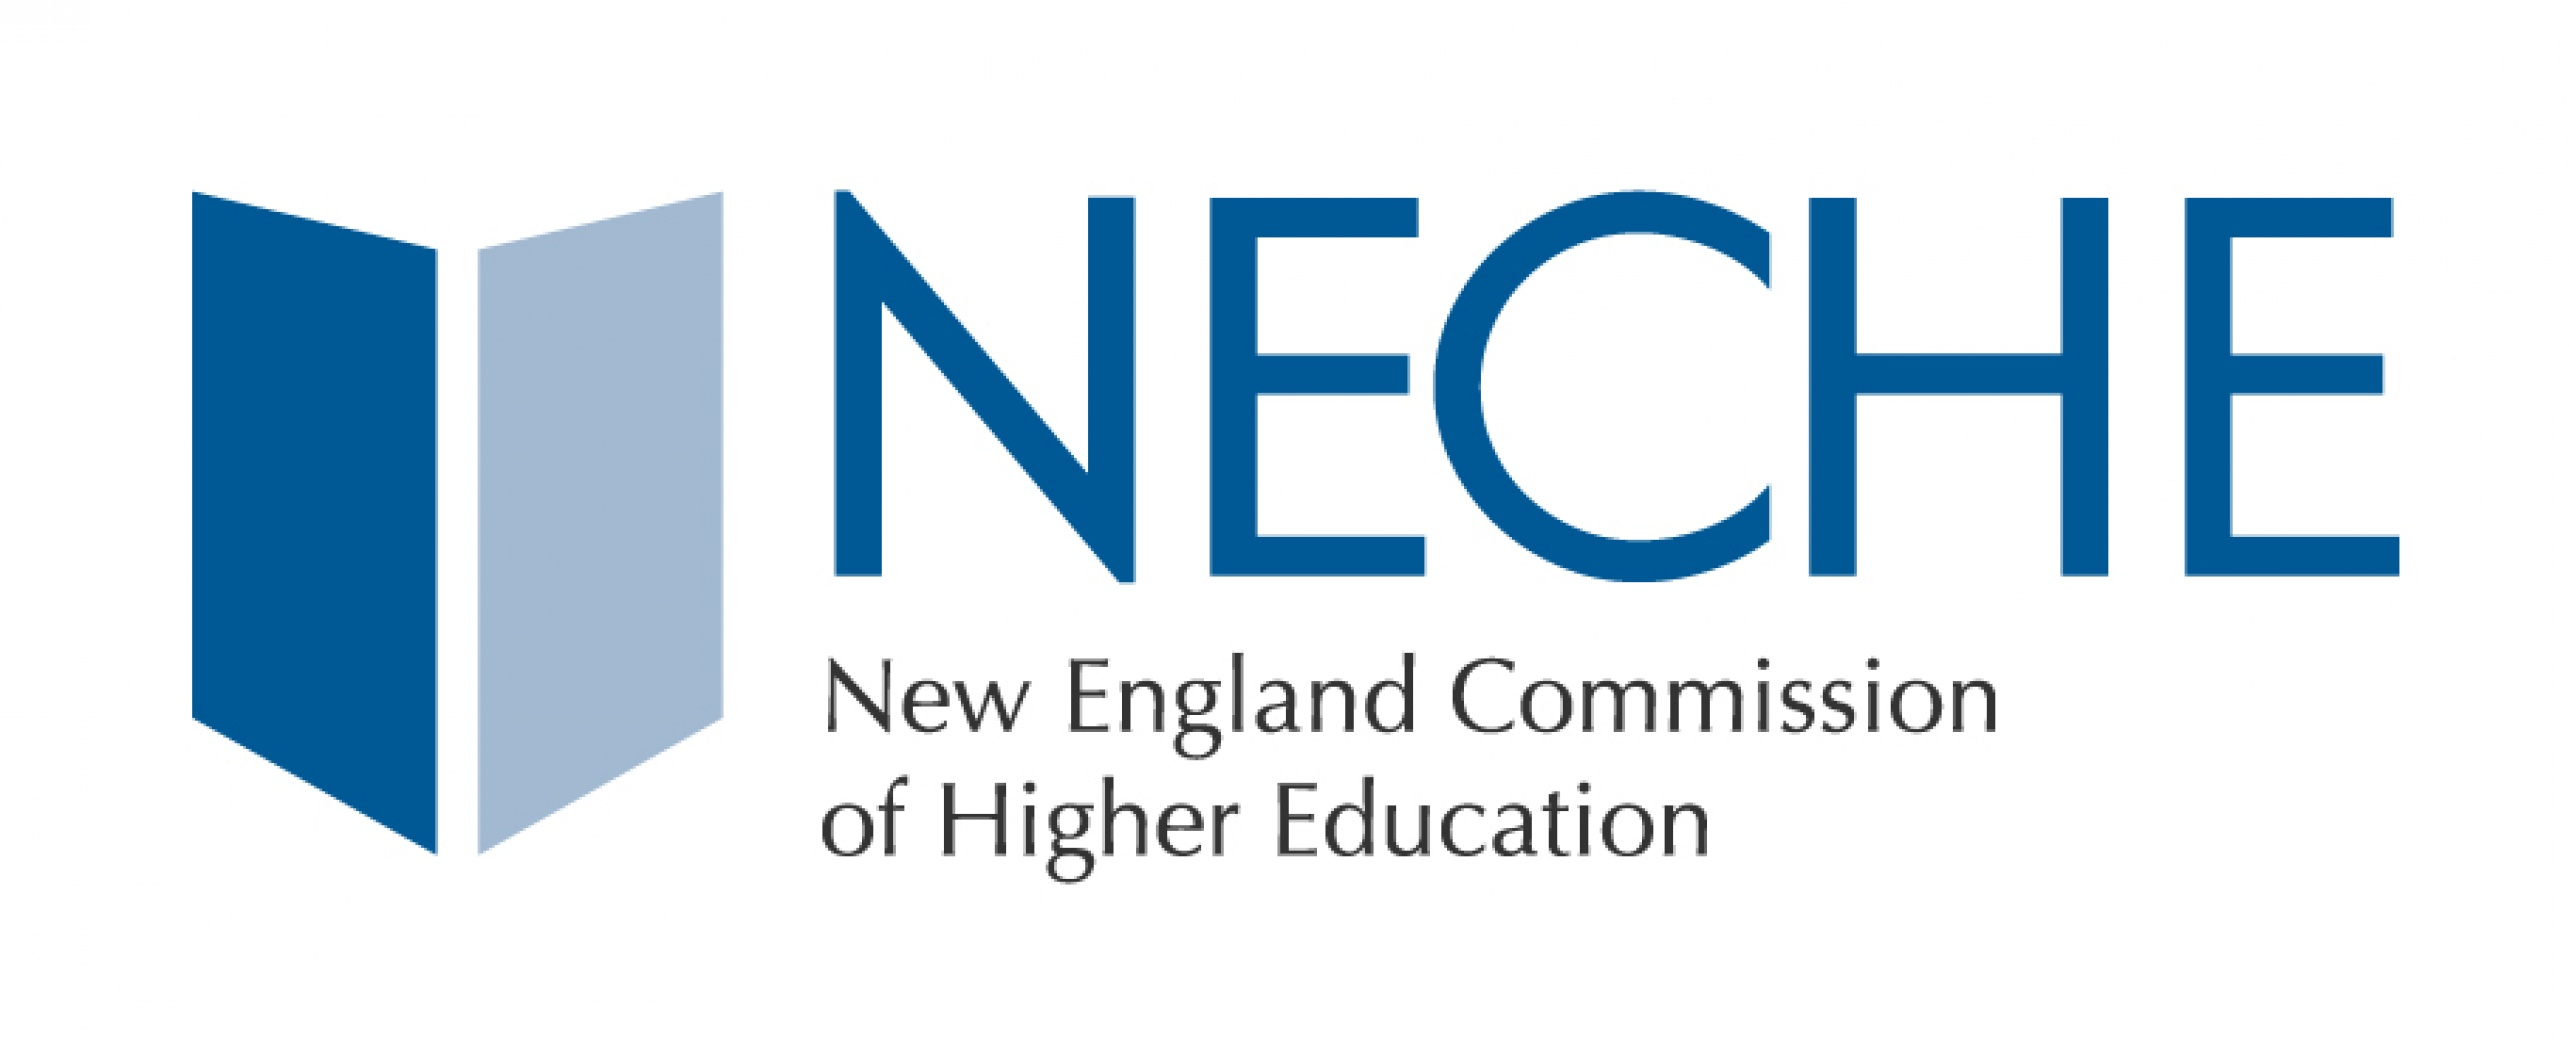 New England Commission of Higher Education (NECHE)